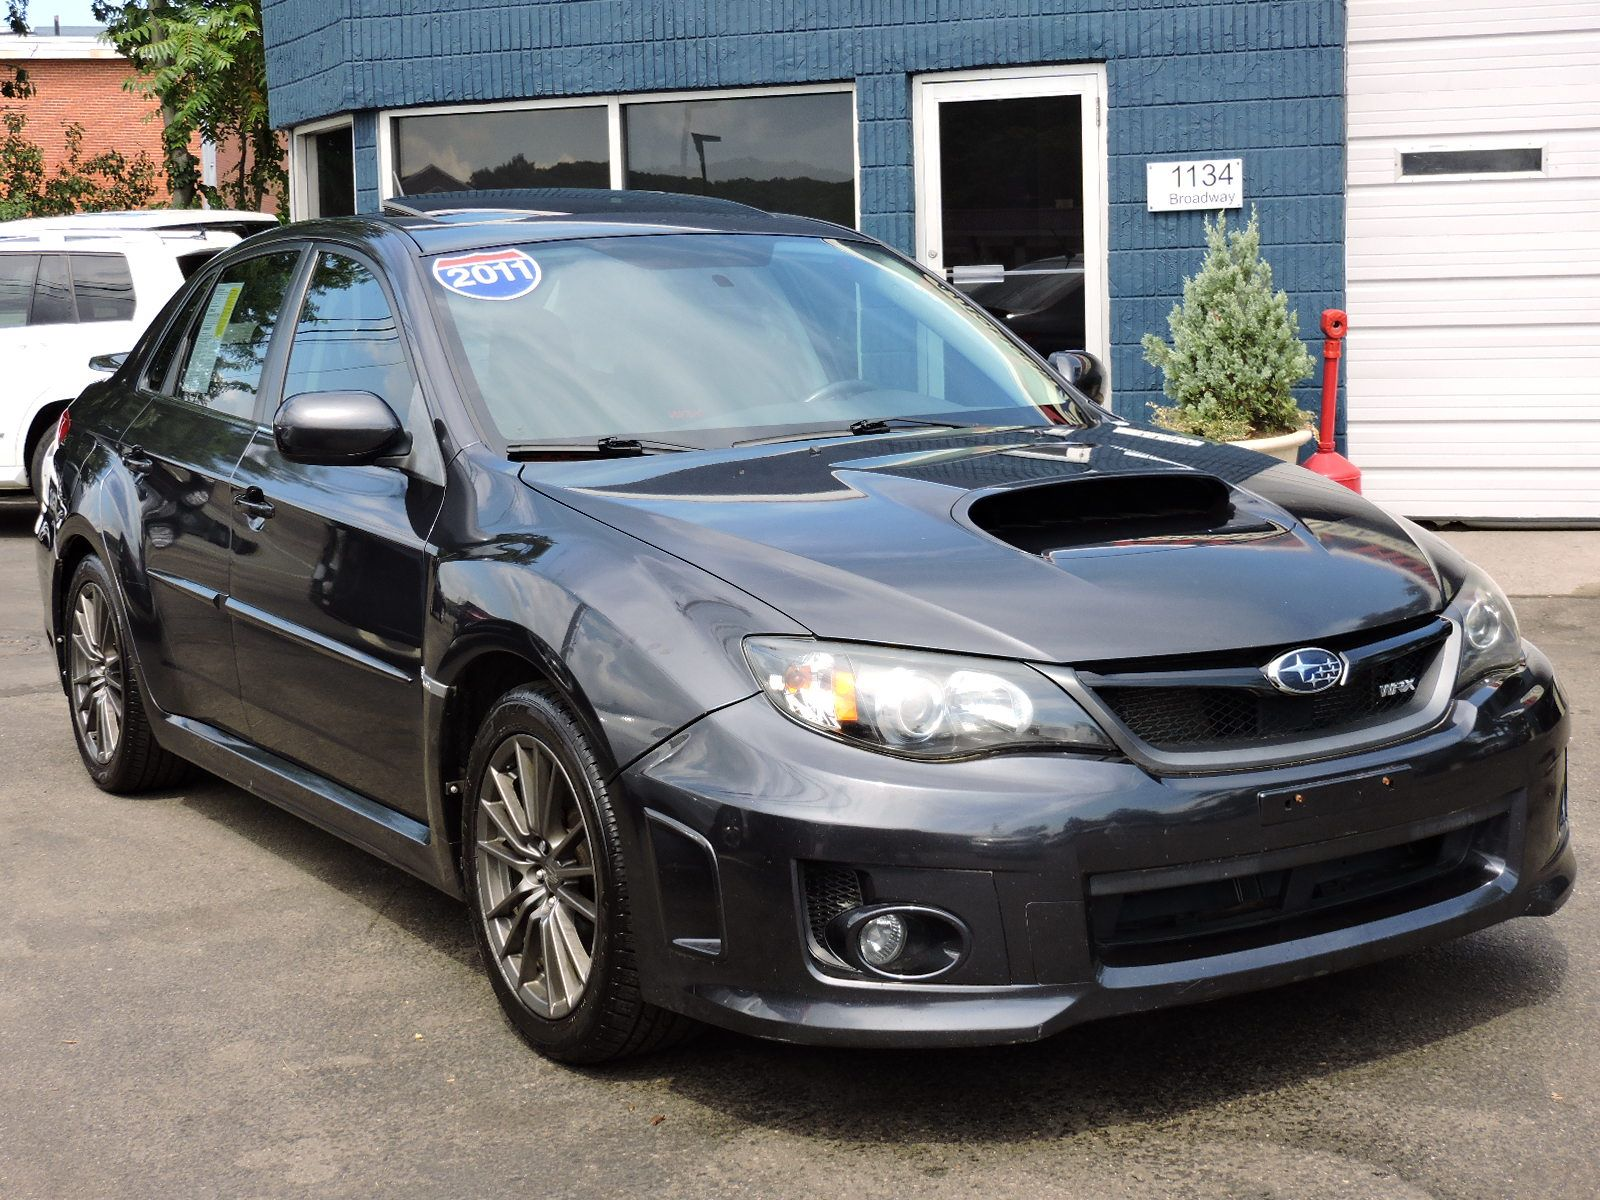 used 2011 subaru impreza sedan wrx wrx premium at saugus. Black Bedroom Furniture Sets. Home Design Ideas